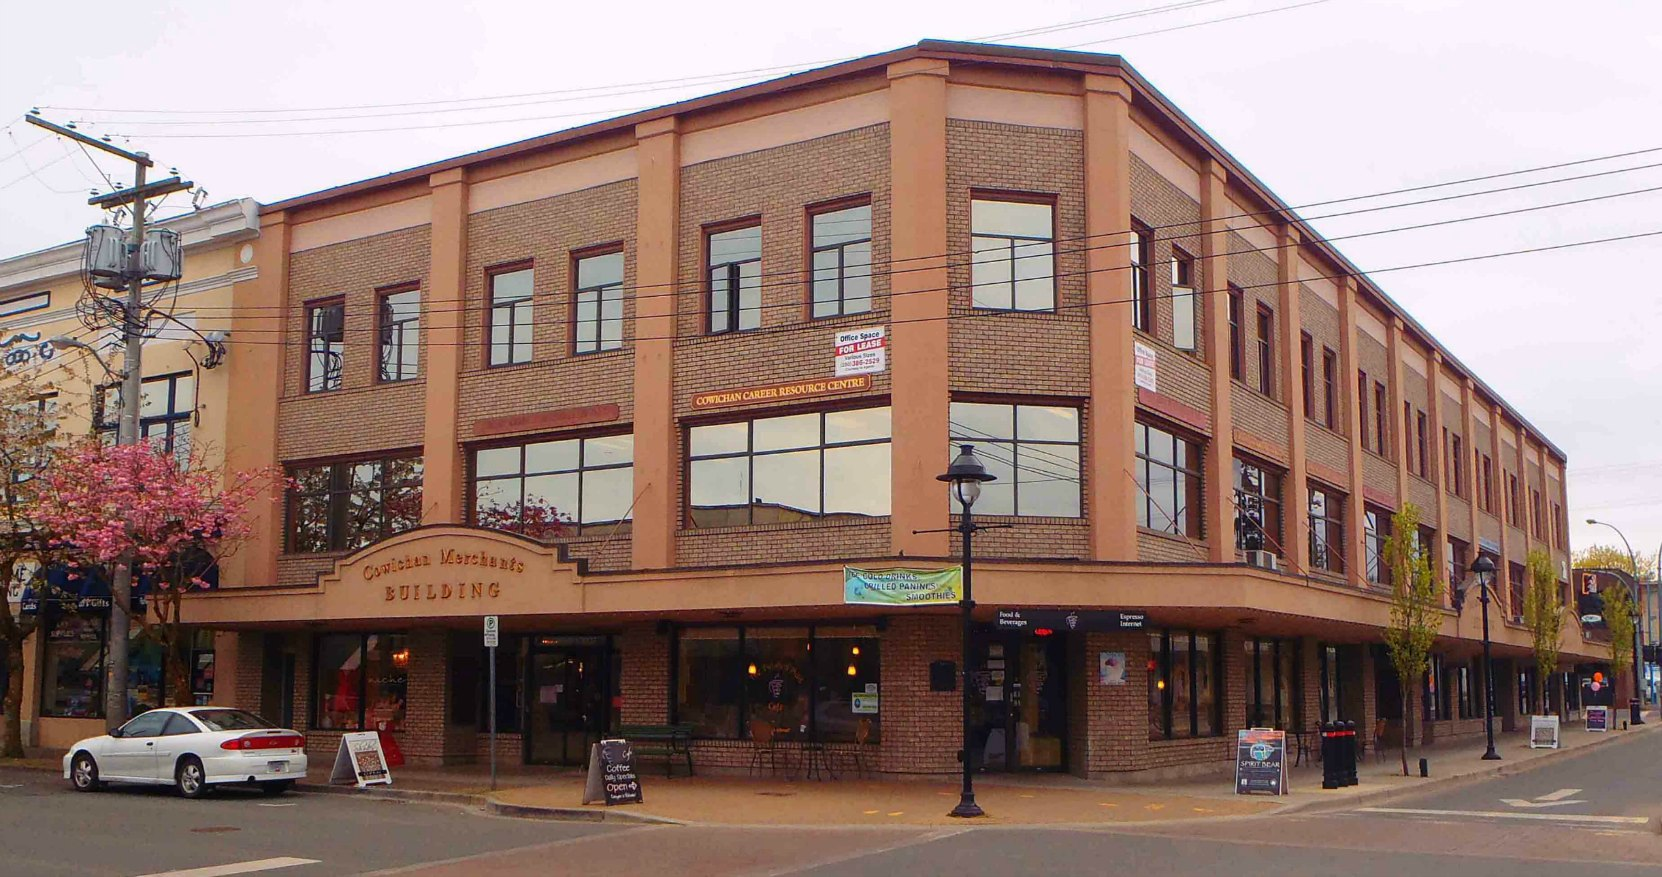 Cowichan Merchants Building in downtown Duncan. Thomas Pitt and Andrew H. Peterson were among the three partners who built this landmark building in 1912.